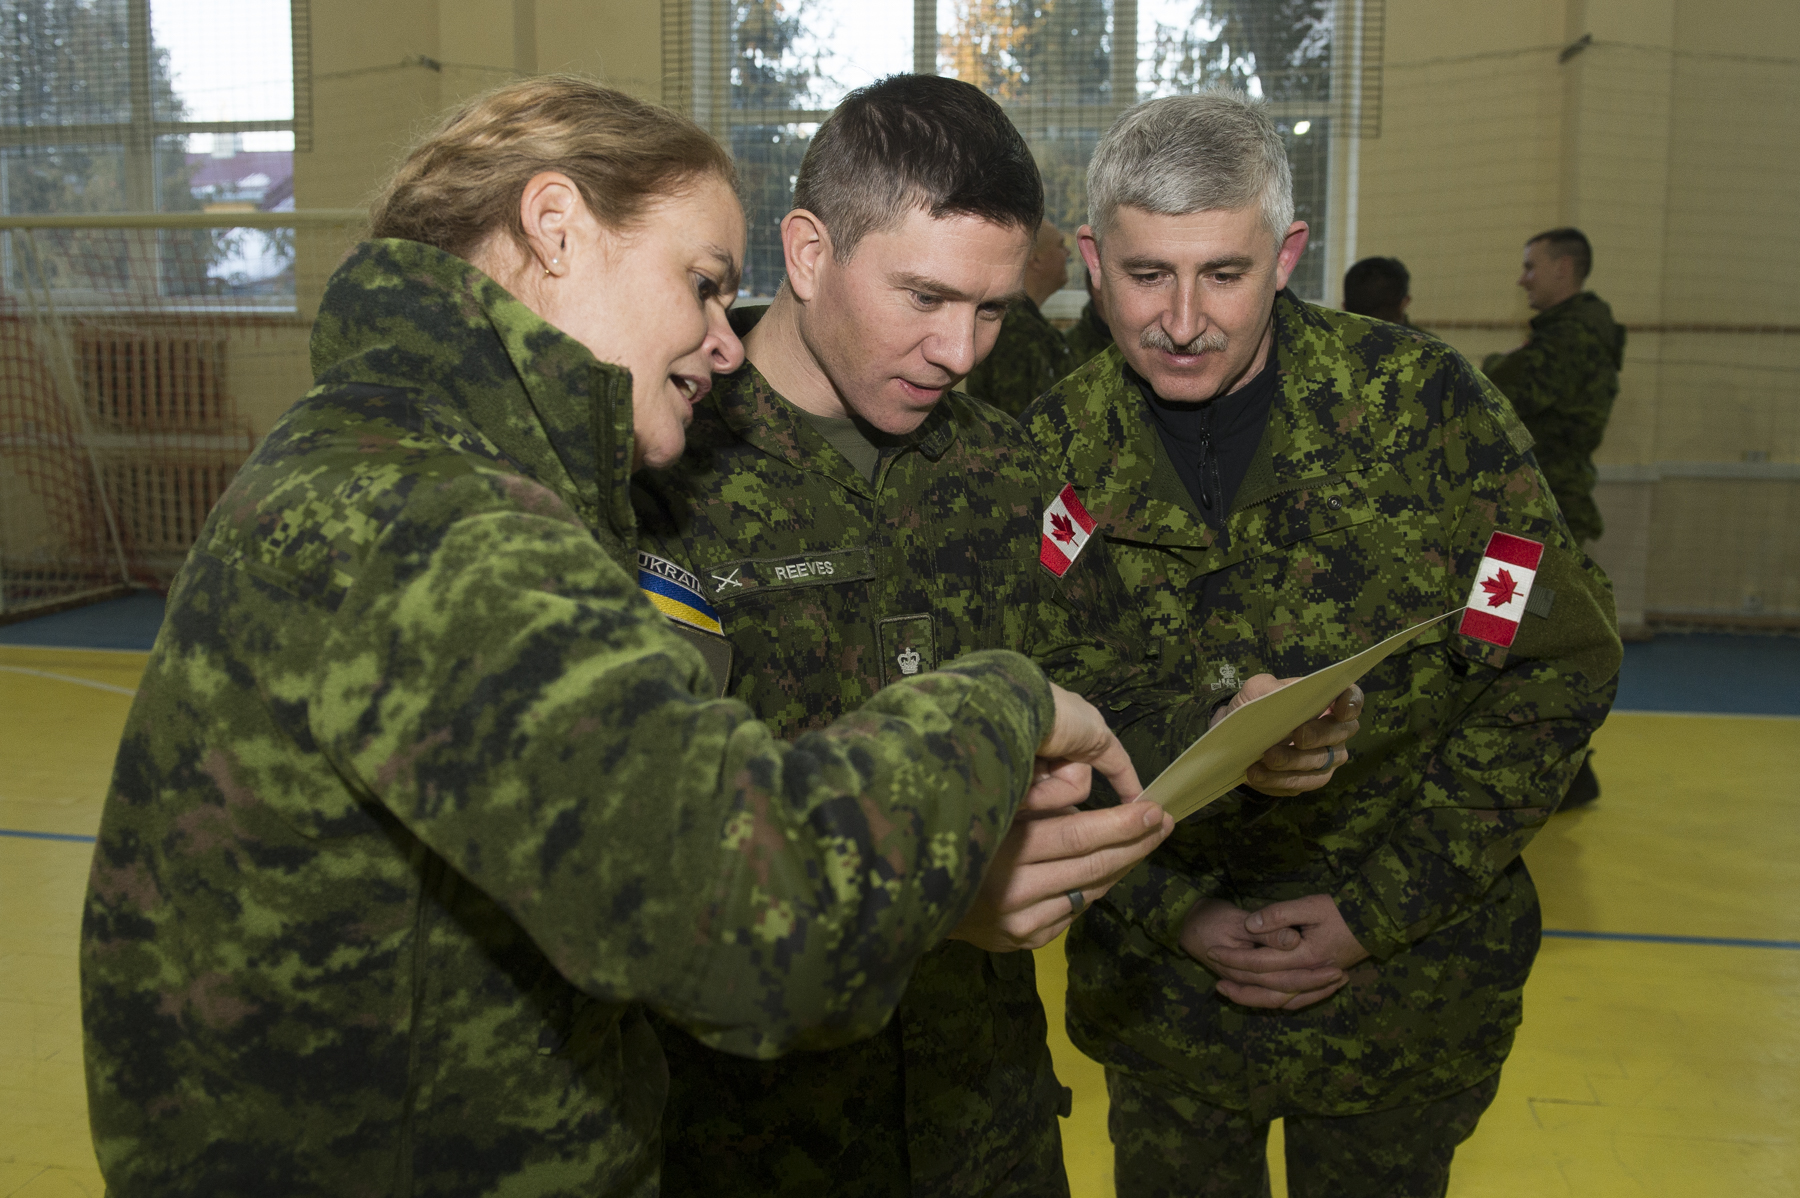 During this visit, Her Excellency learned about Operation UNIFIER.